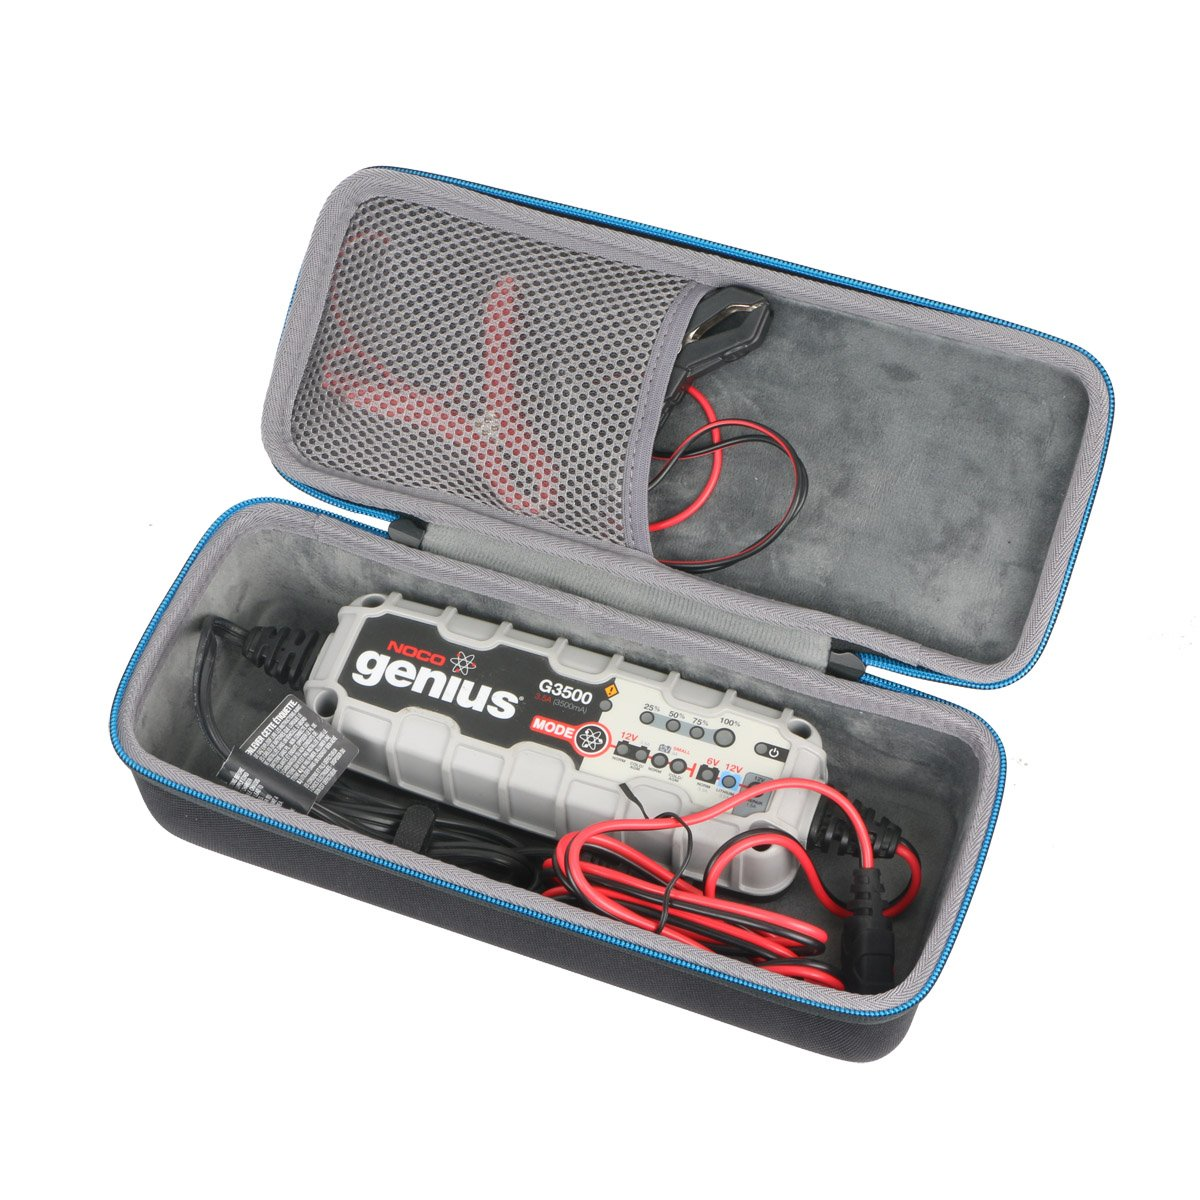 Baval Protective Carrying Case for Noco Genius G3500 6V/12V 3.5A UltraSafe Smart Battery Charger